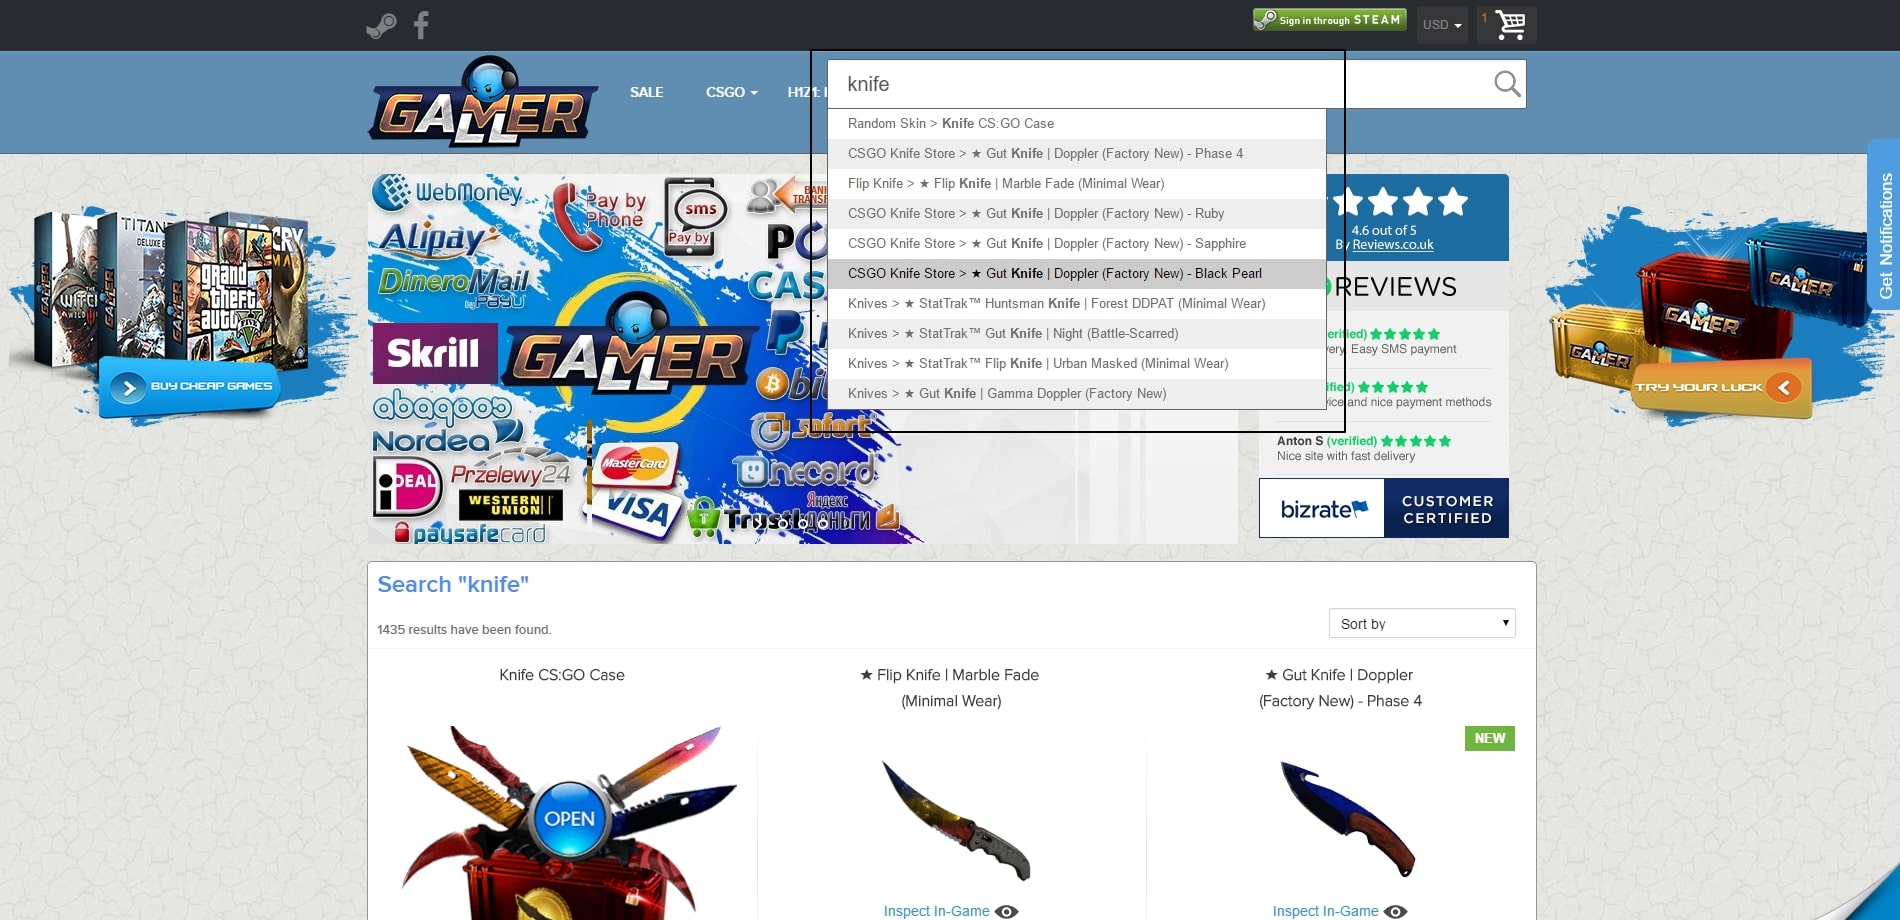 Our Prestashop Work: GamerAll.com